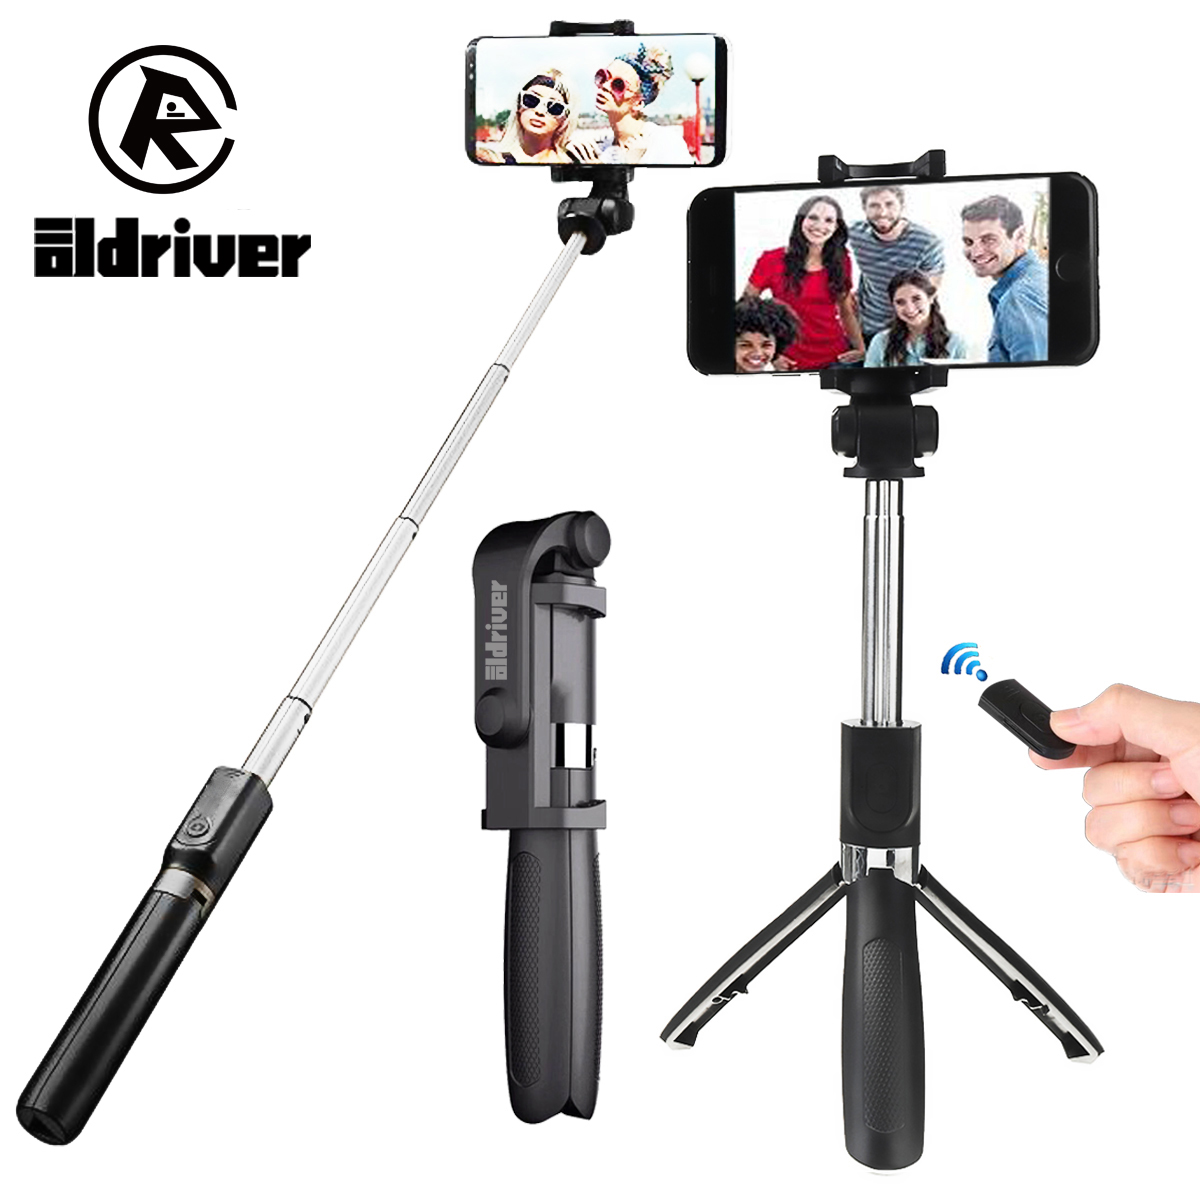 Handheld Mini Foldable Tripod Monopod 2 in 1 Selfie Stick Bluetooth Wireless Remote Control Shutter for Android For iPhone X 8 floveme tripod selfie stick wireless bluetooth monopod for iphone samsung xiaomi remote control handheld smartphone selfie stick